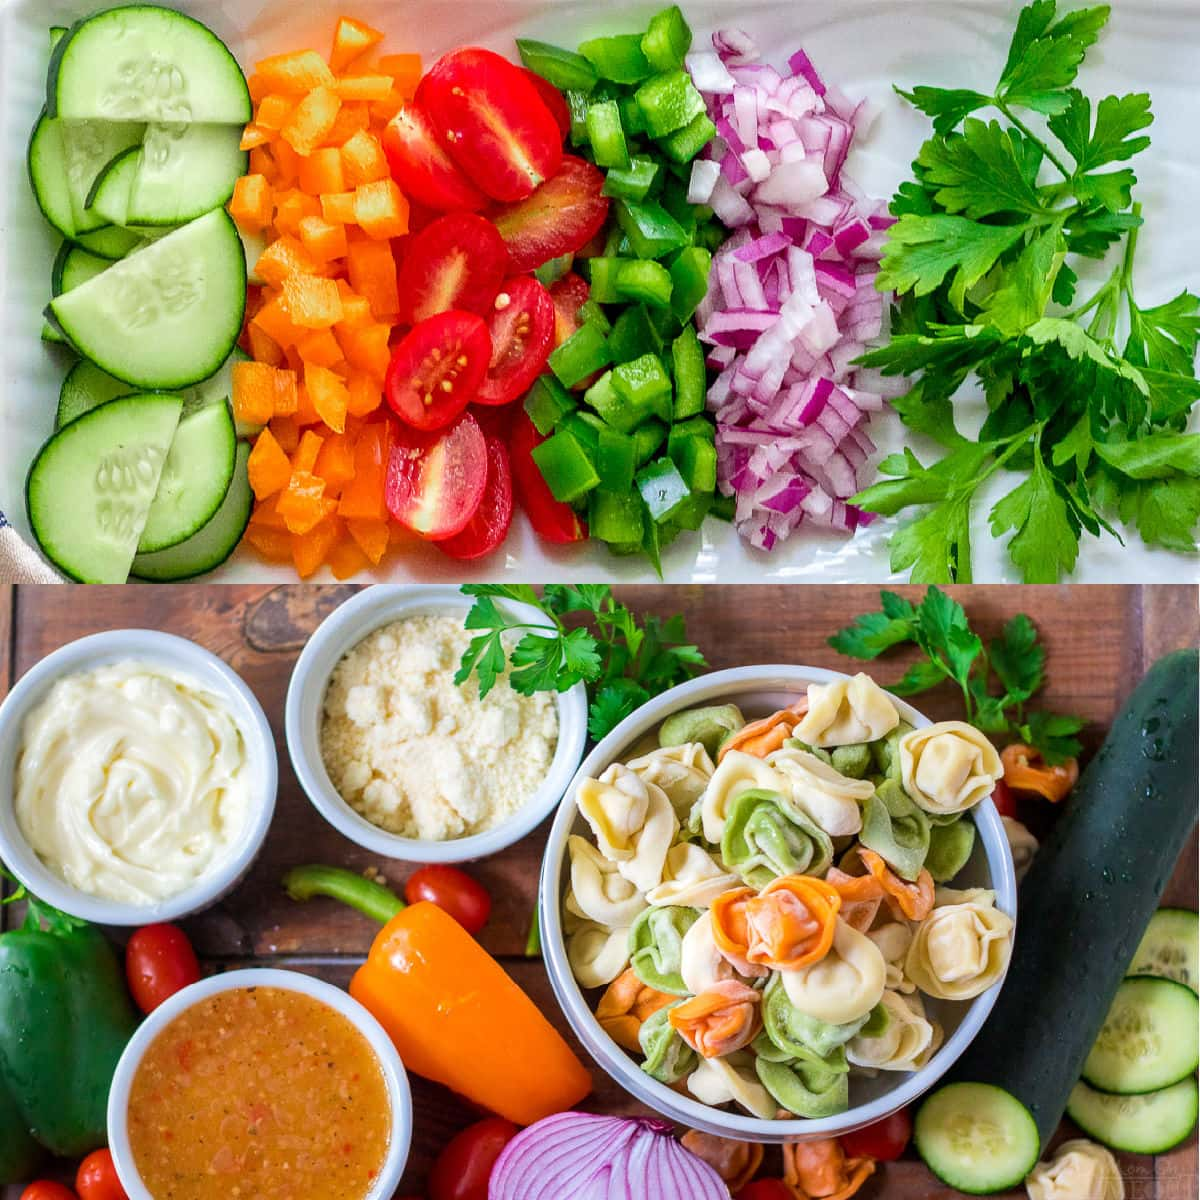 veggies for pasta salad and all other ingredients